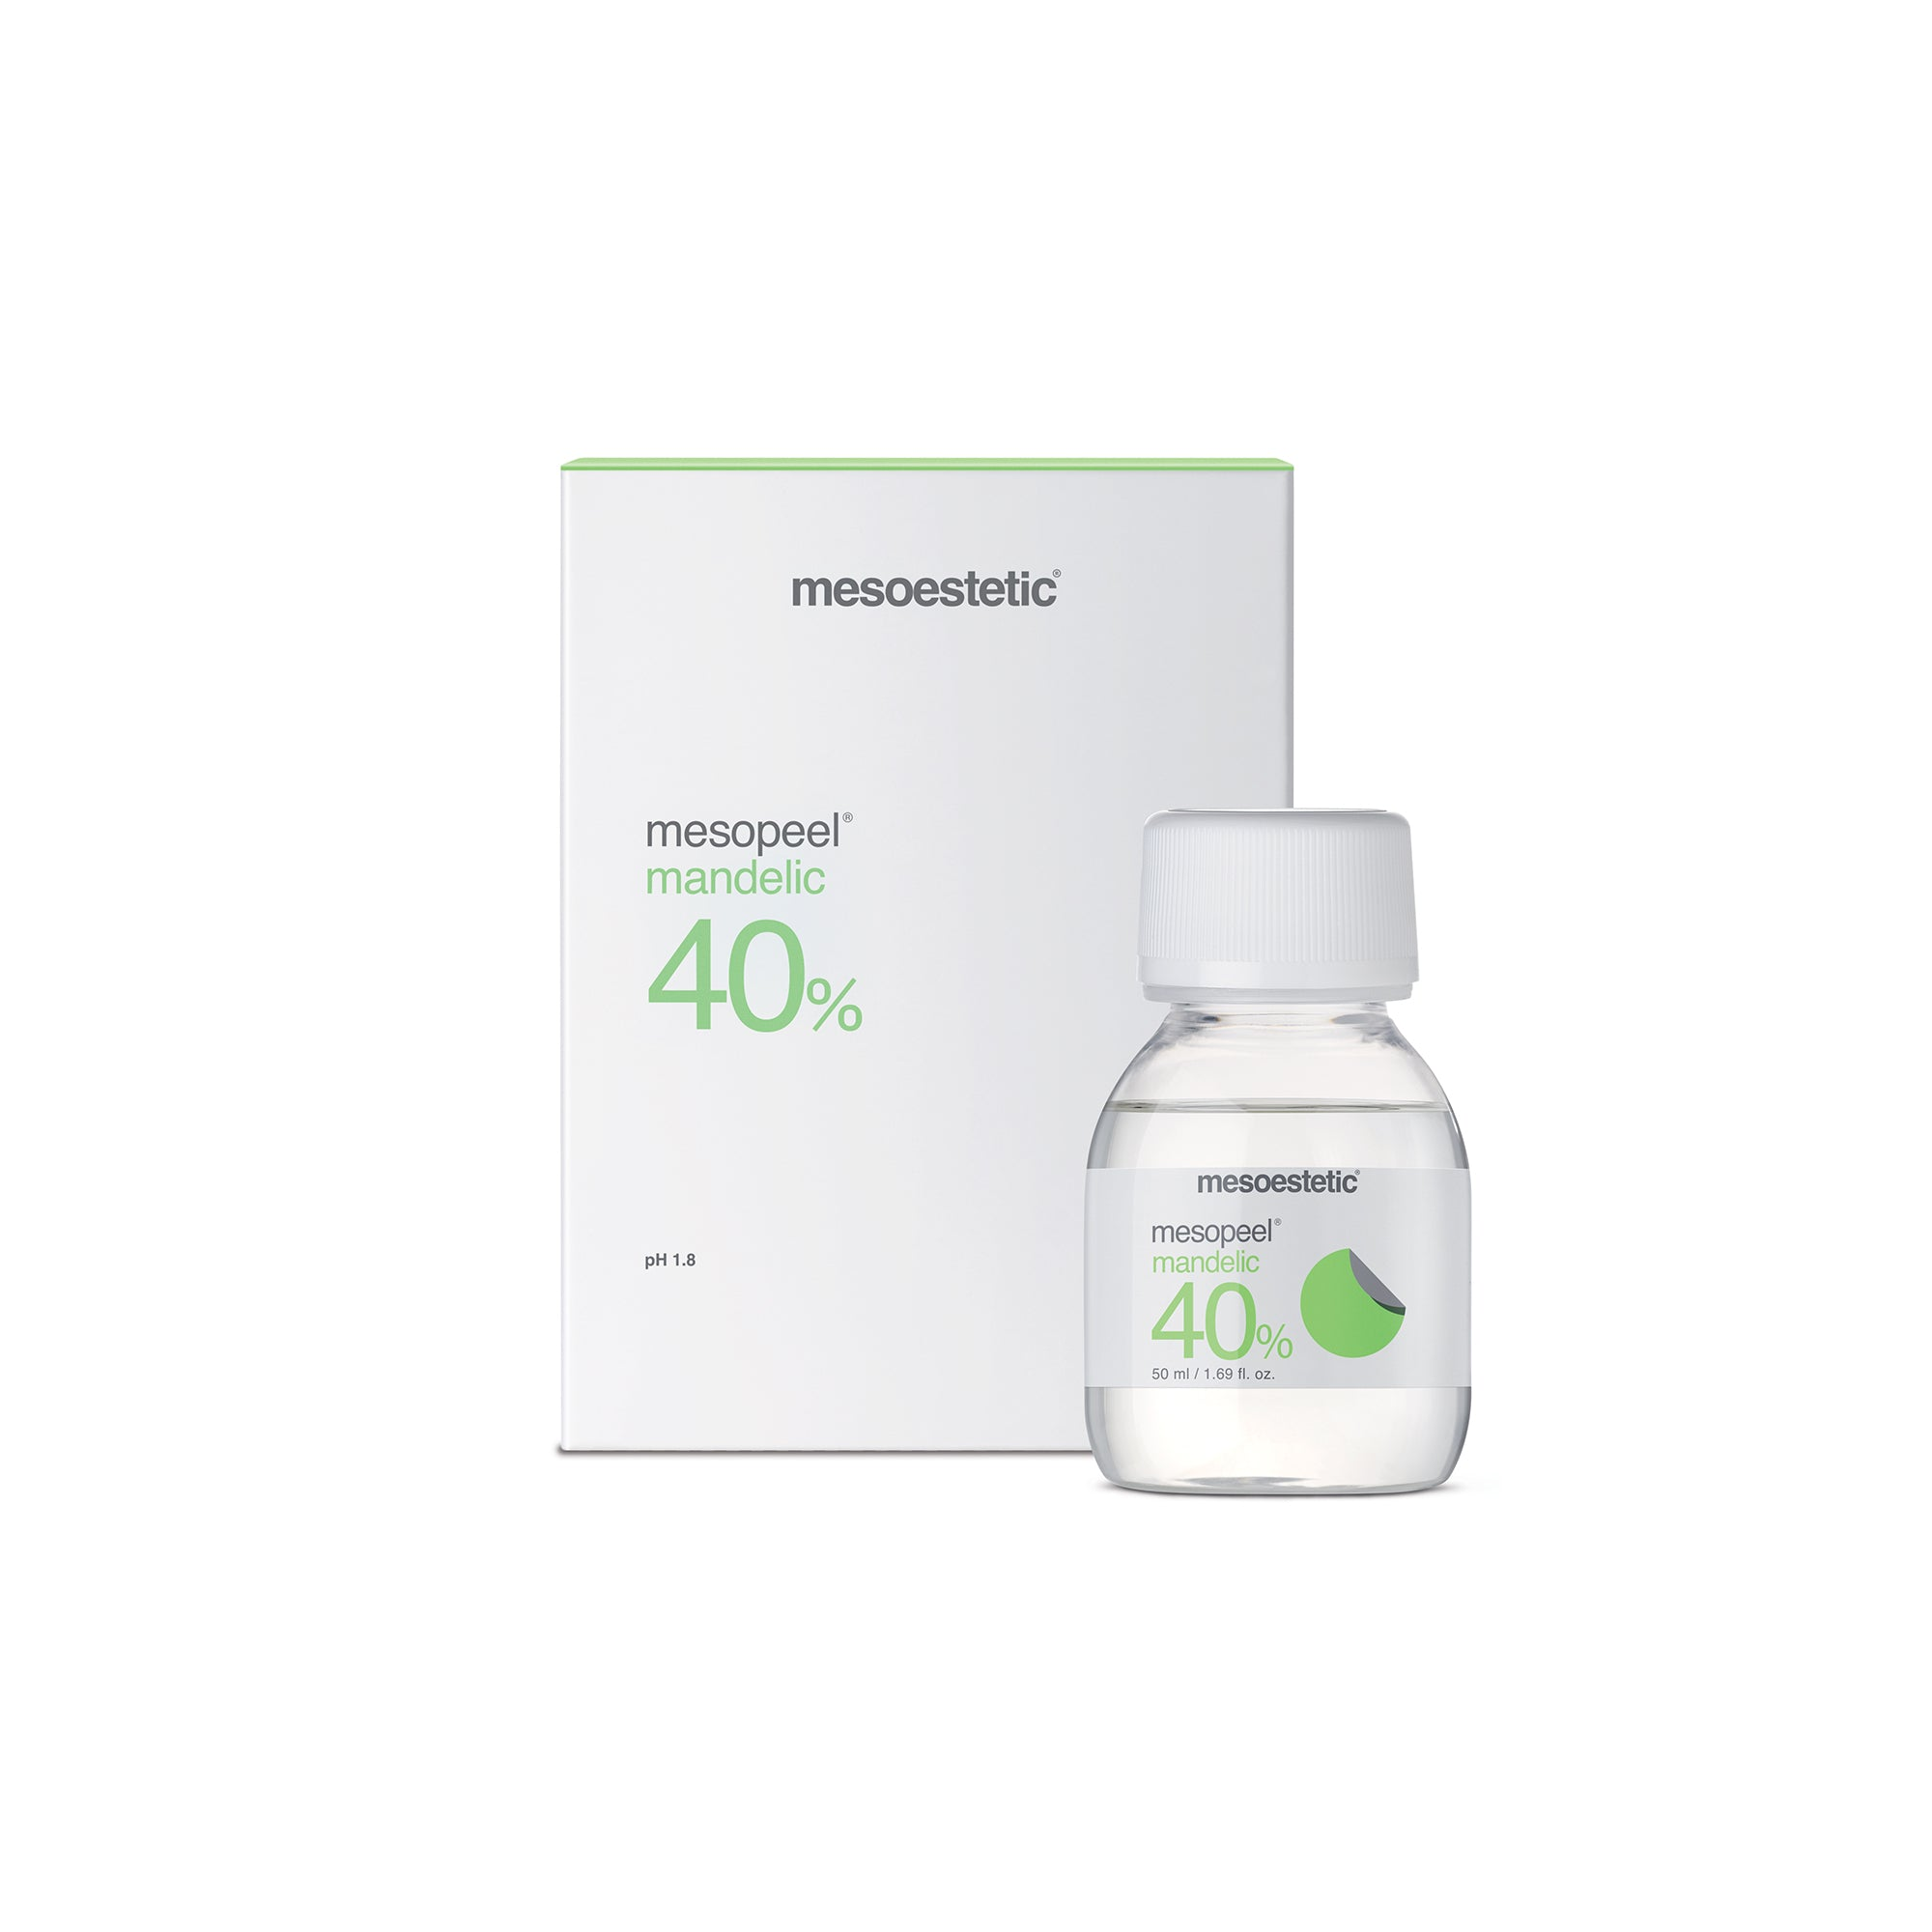 mesopeel mandelic 40% - 50 ml + 1 neutralizing spray